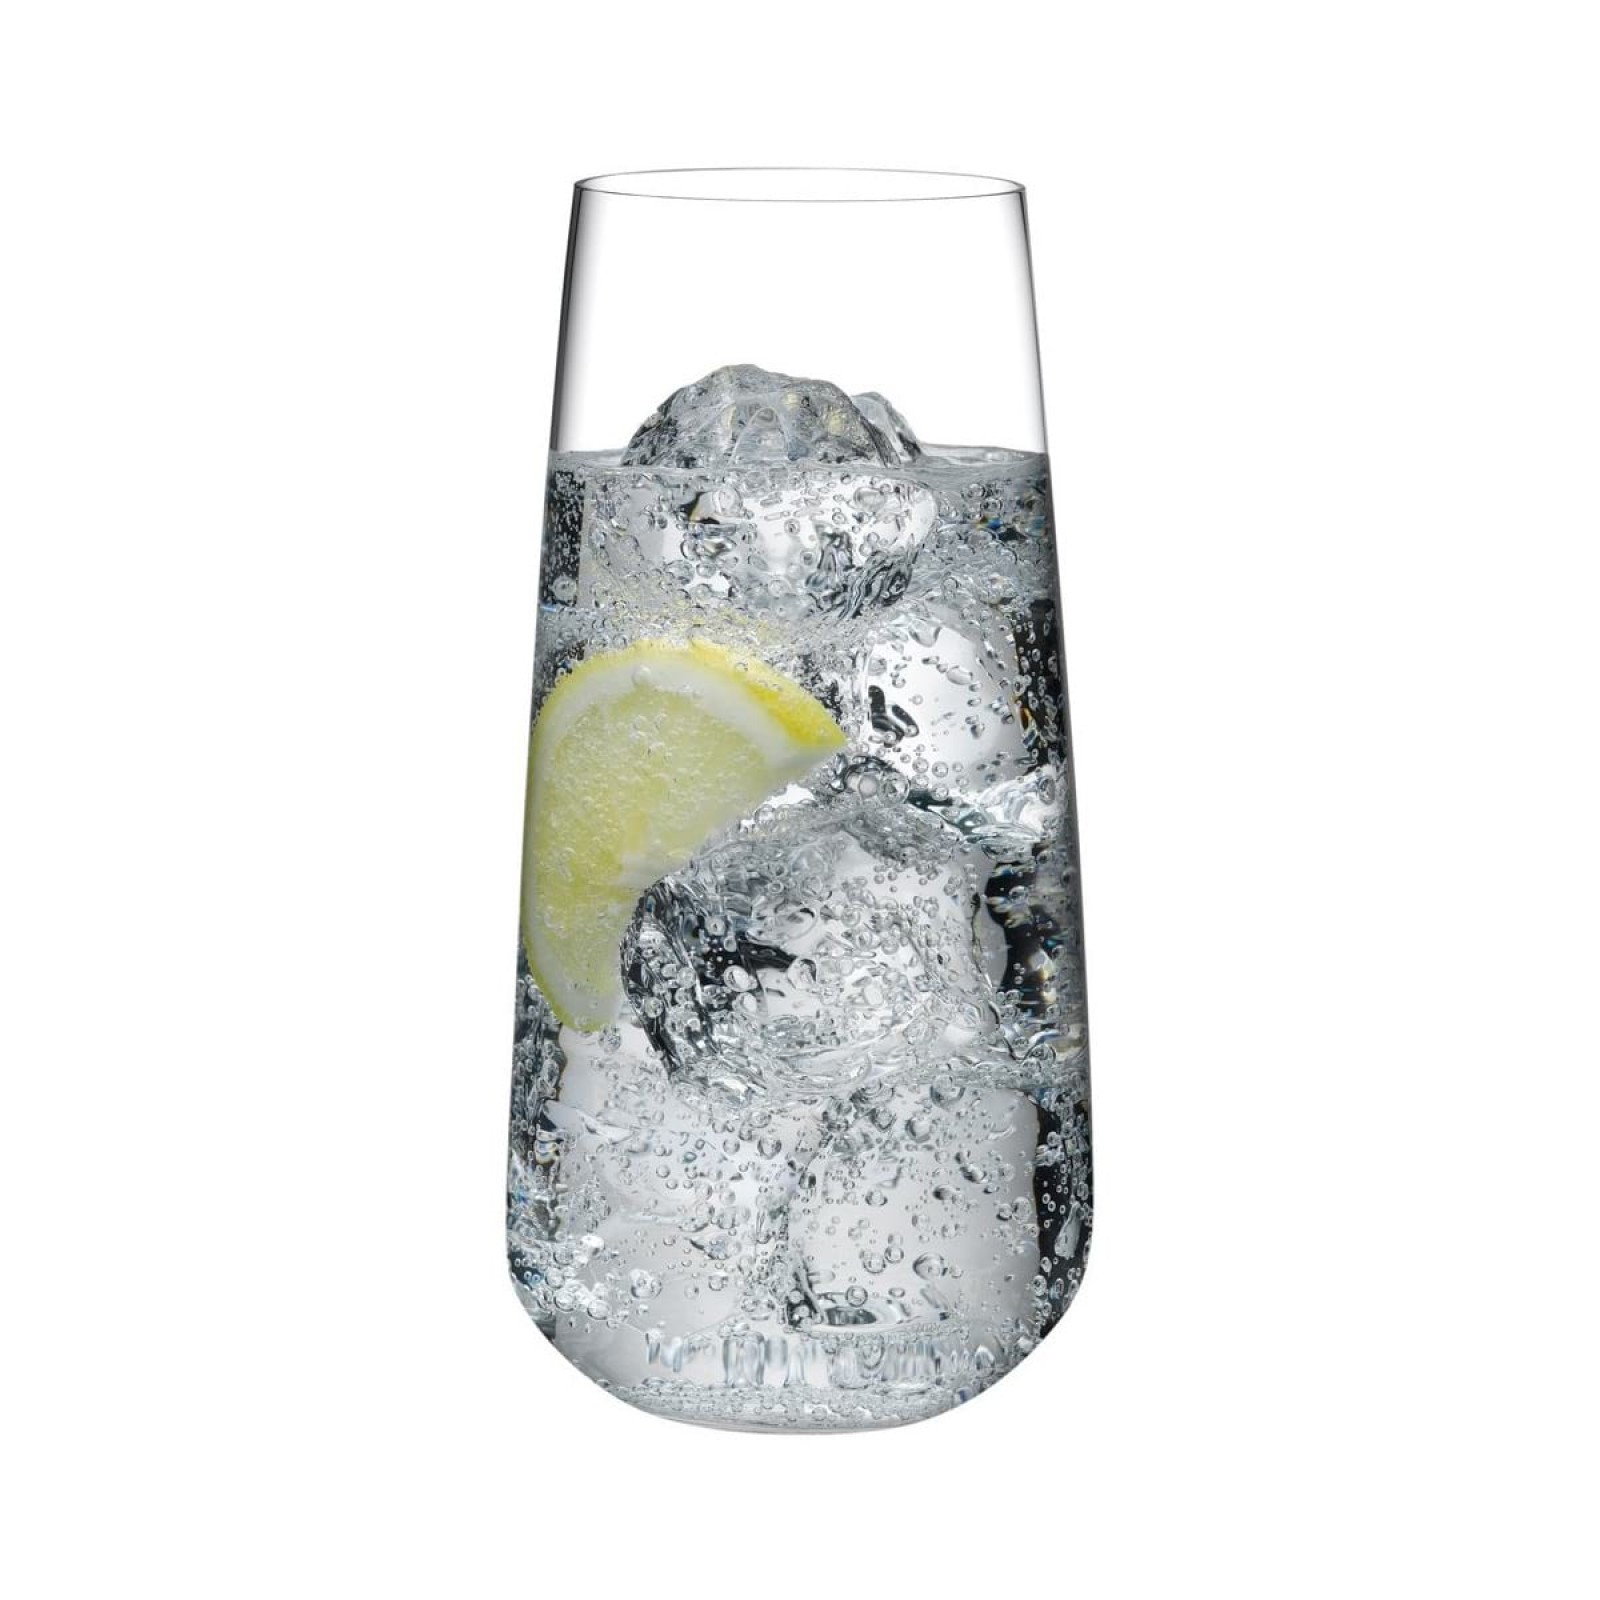 Mirage High Ball Glasses 480 ml. (Set of 6) - Nude Glass